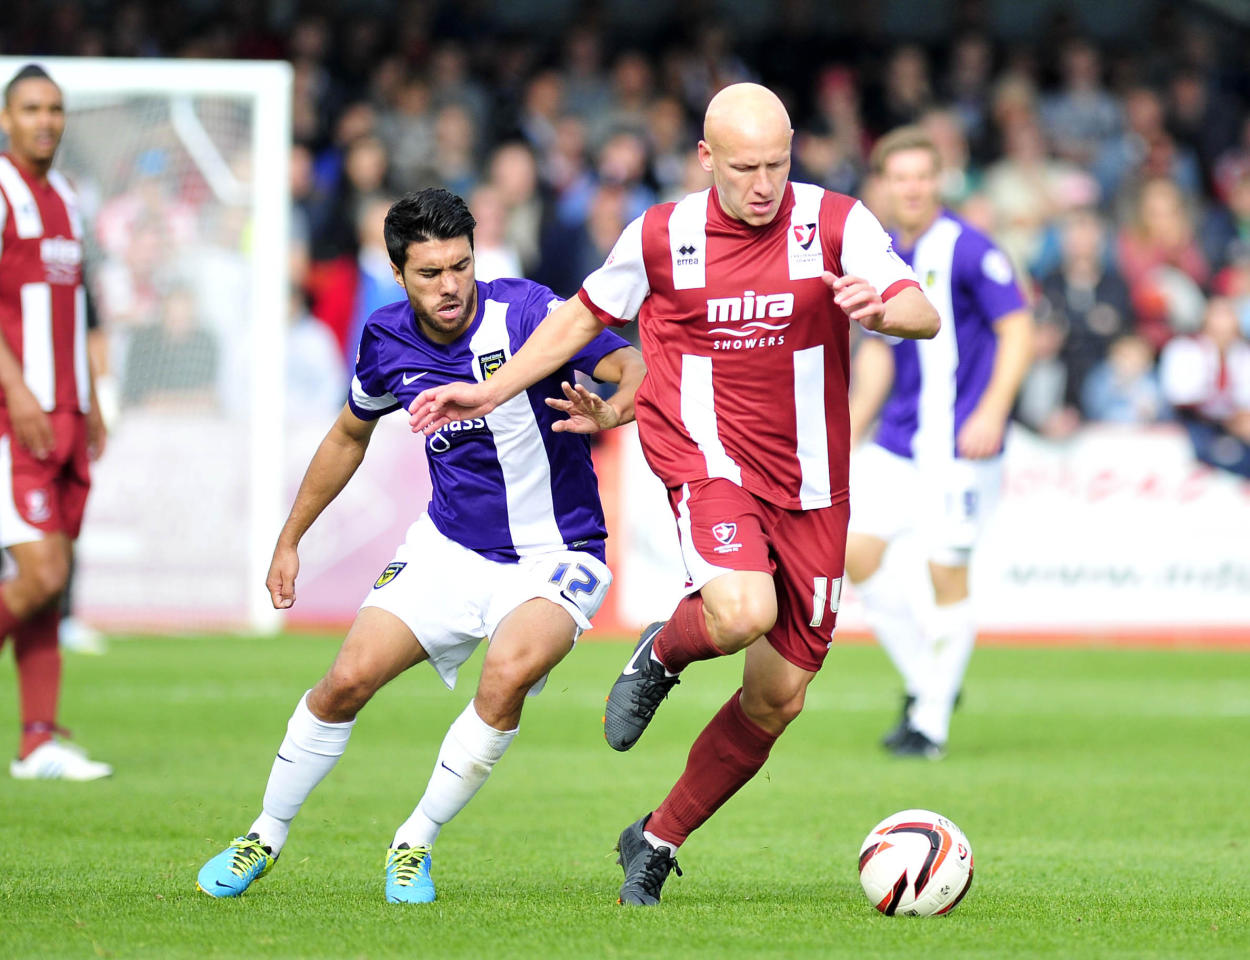 Cheltenham's Matt Richards and Oxford's Danny Rose in action during the Sky Bet League Two match at the Abbey Business Stadium, Cheltenham.